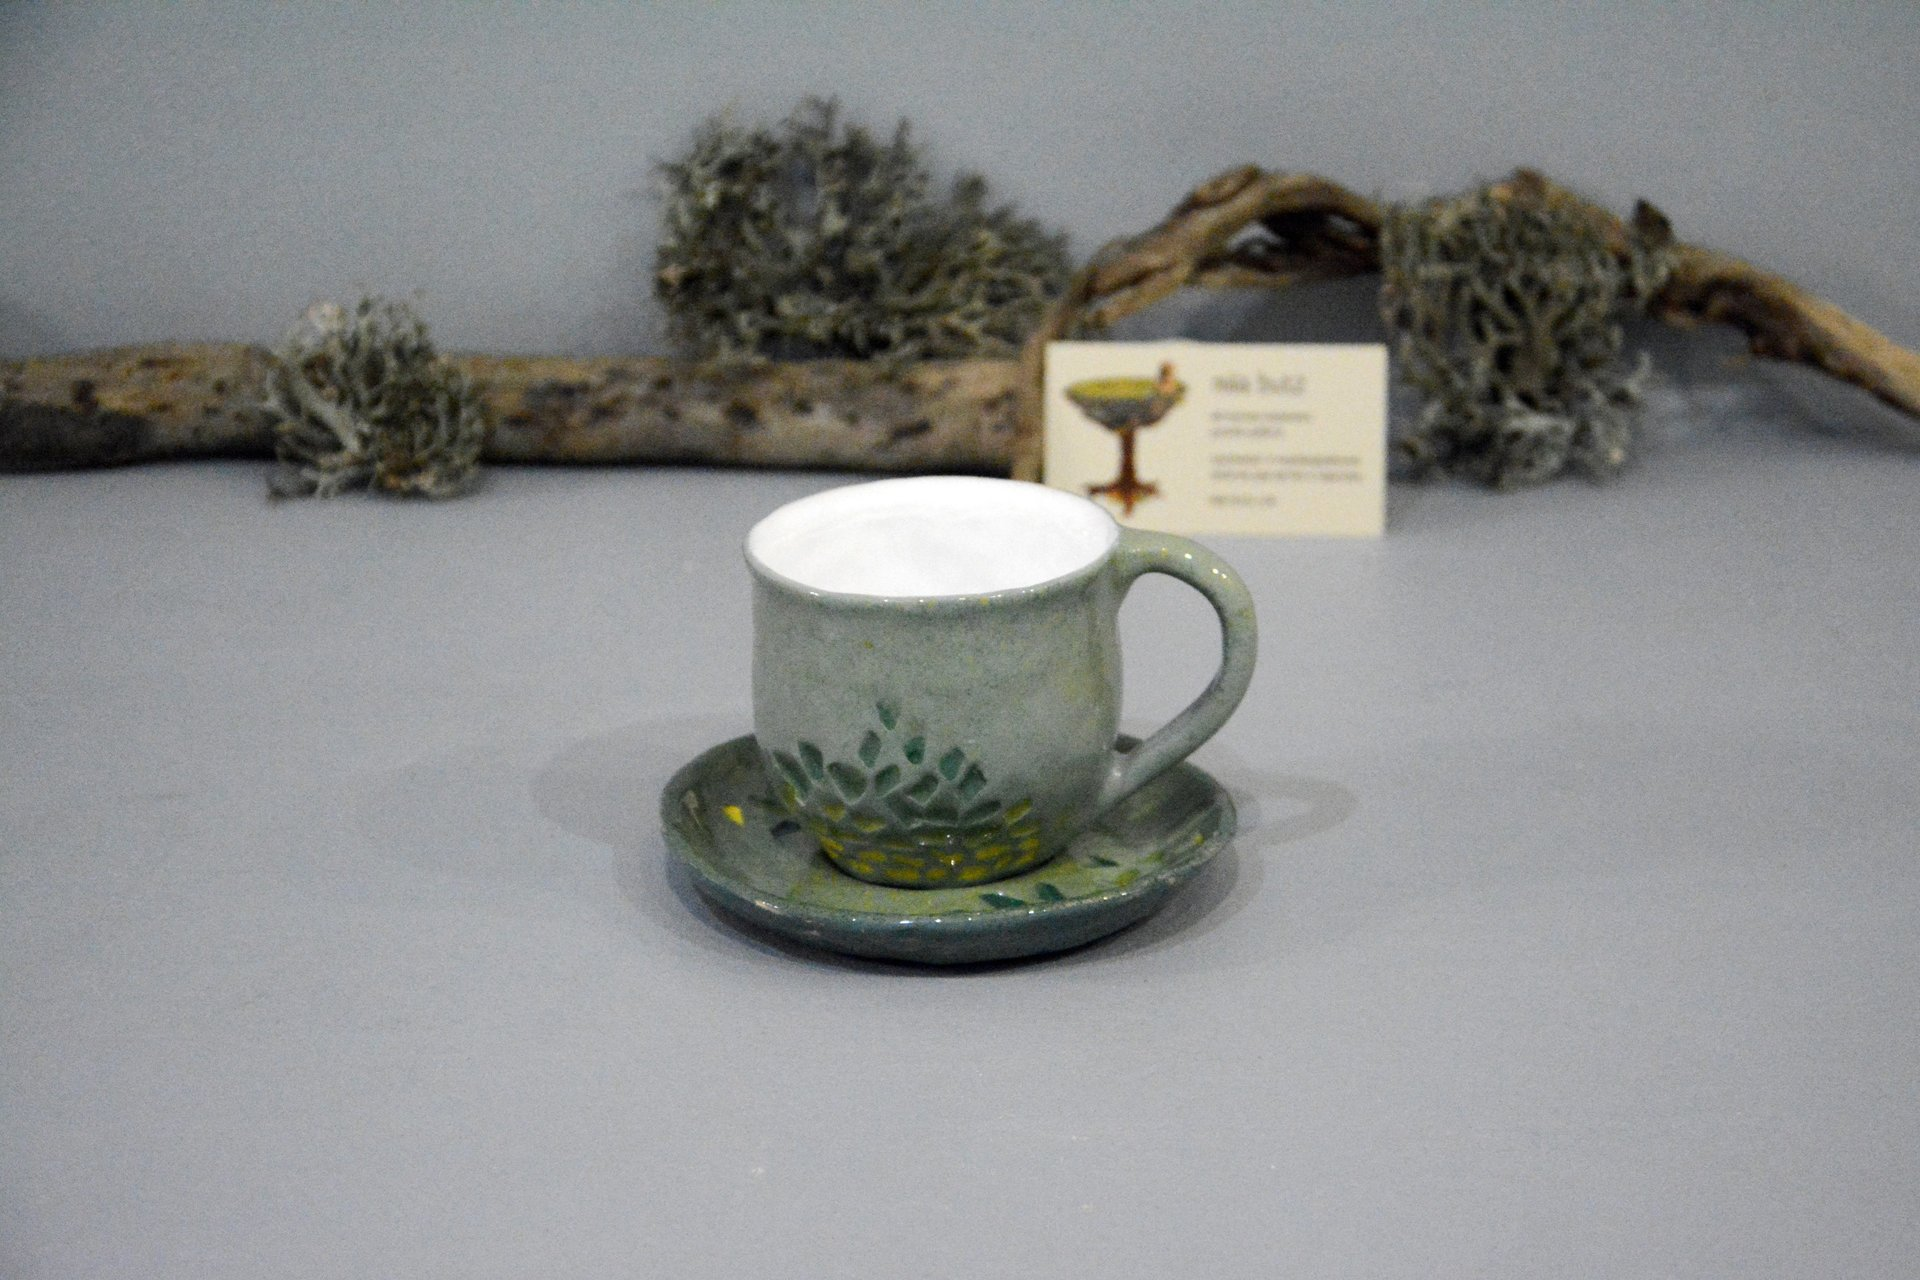 Gray cup for tea or coffee, height - 7 cm, volume - 220 ml, photo 2 of 8.